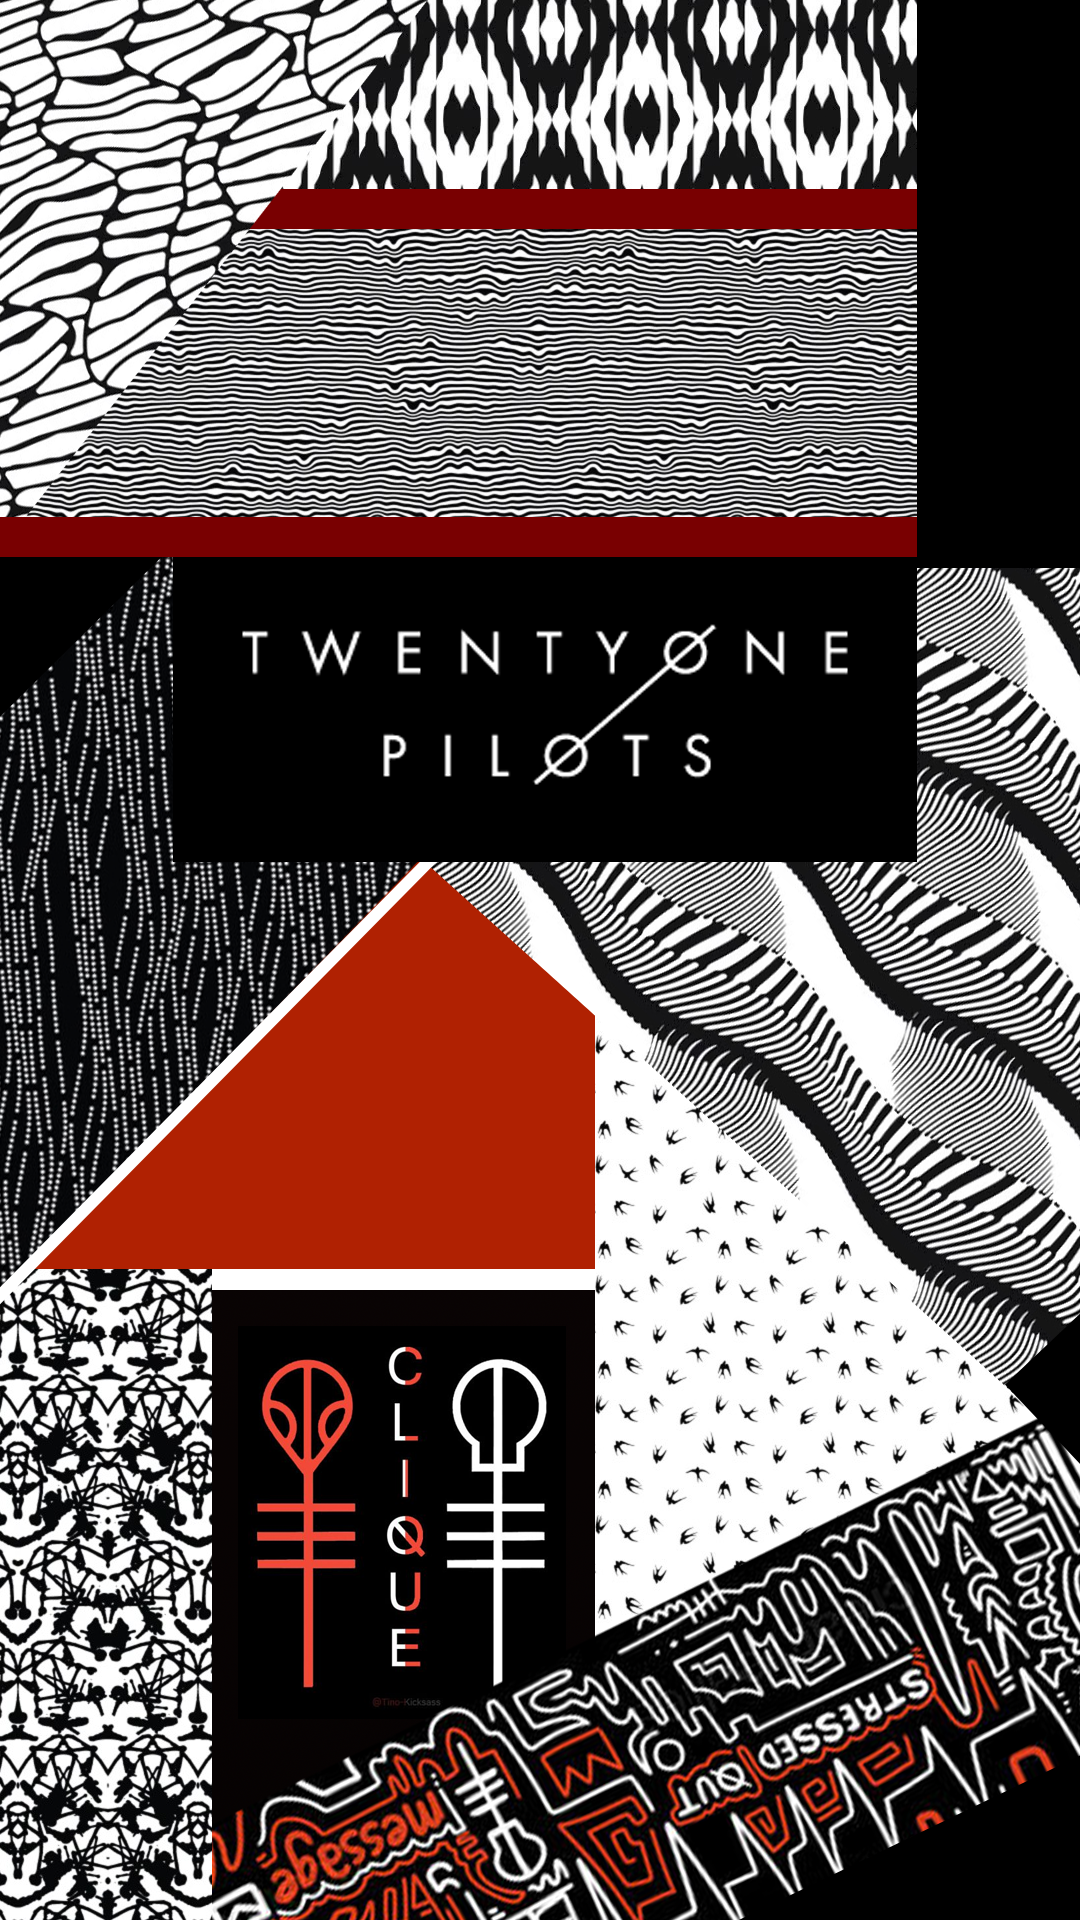 Blurryface Twenty One Pilots Wallpaper Phone Iphone Android Galexy